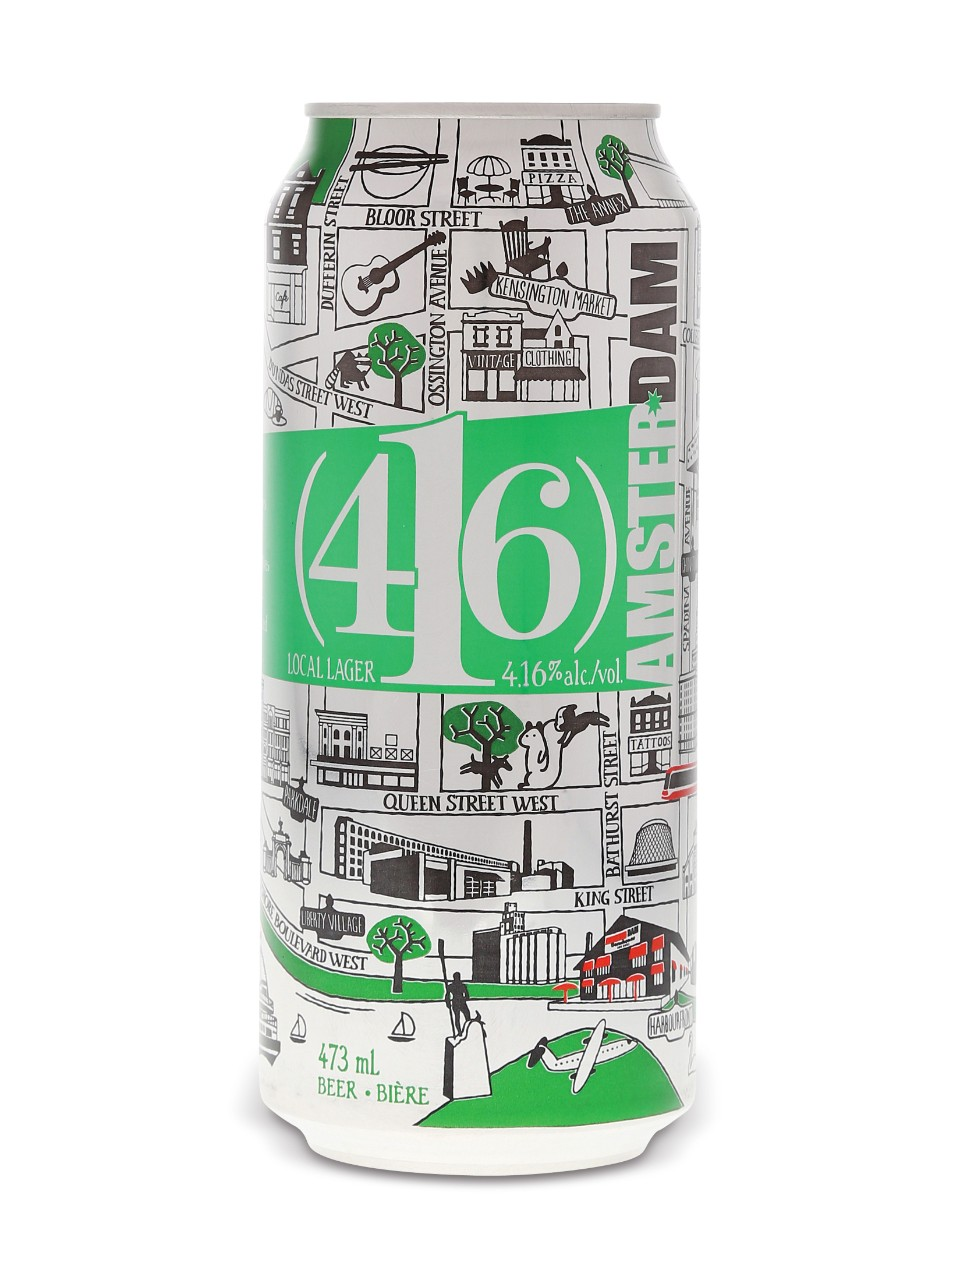 (416) Local Lager